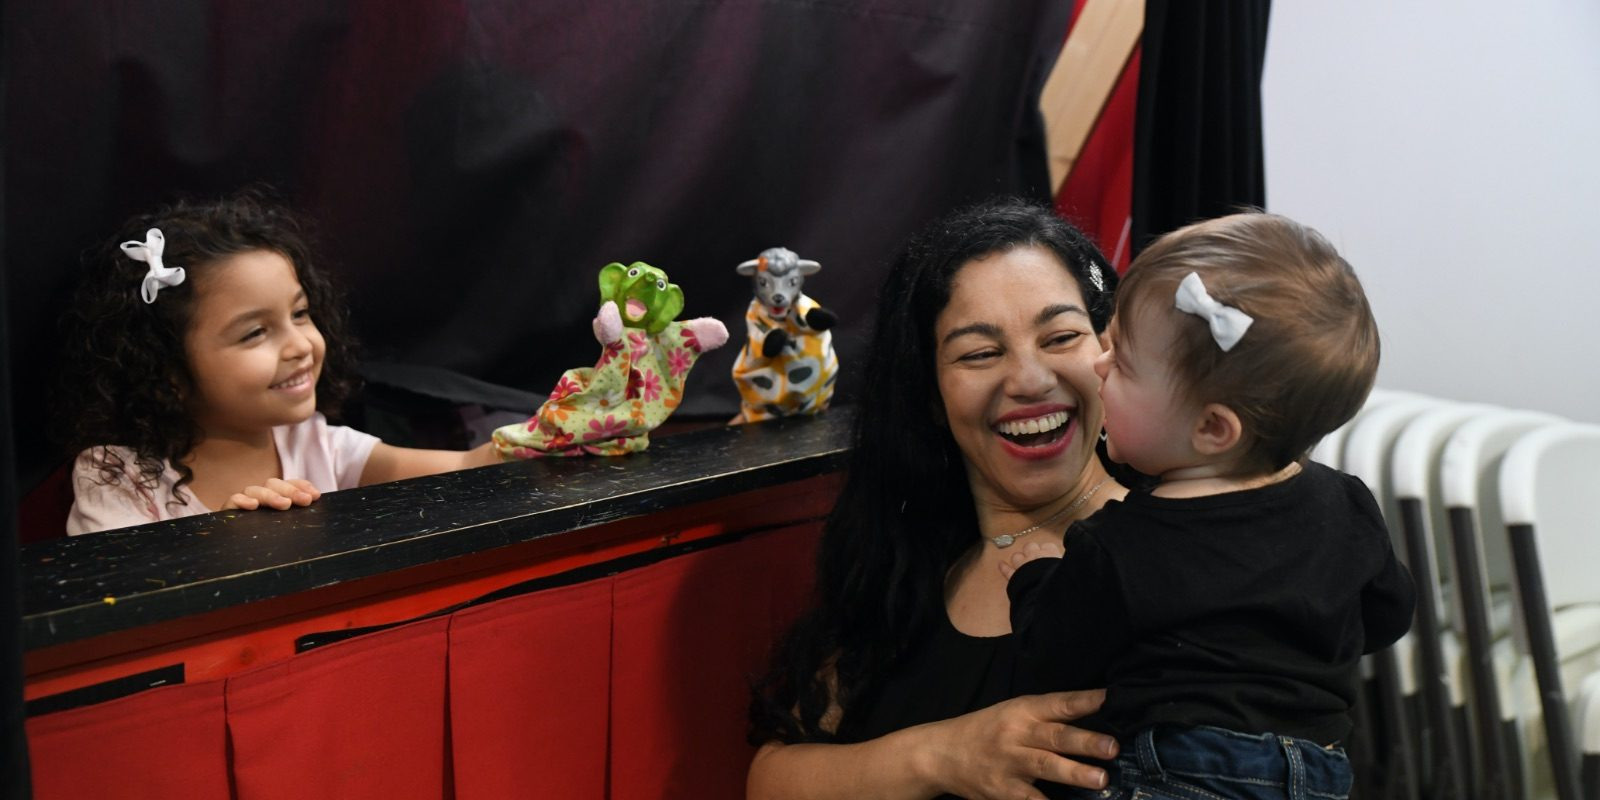 Elayna Fernández and her daughters put on a puppet show at the Puppetry Arts Institute in Independence, MO